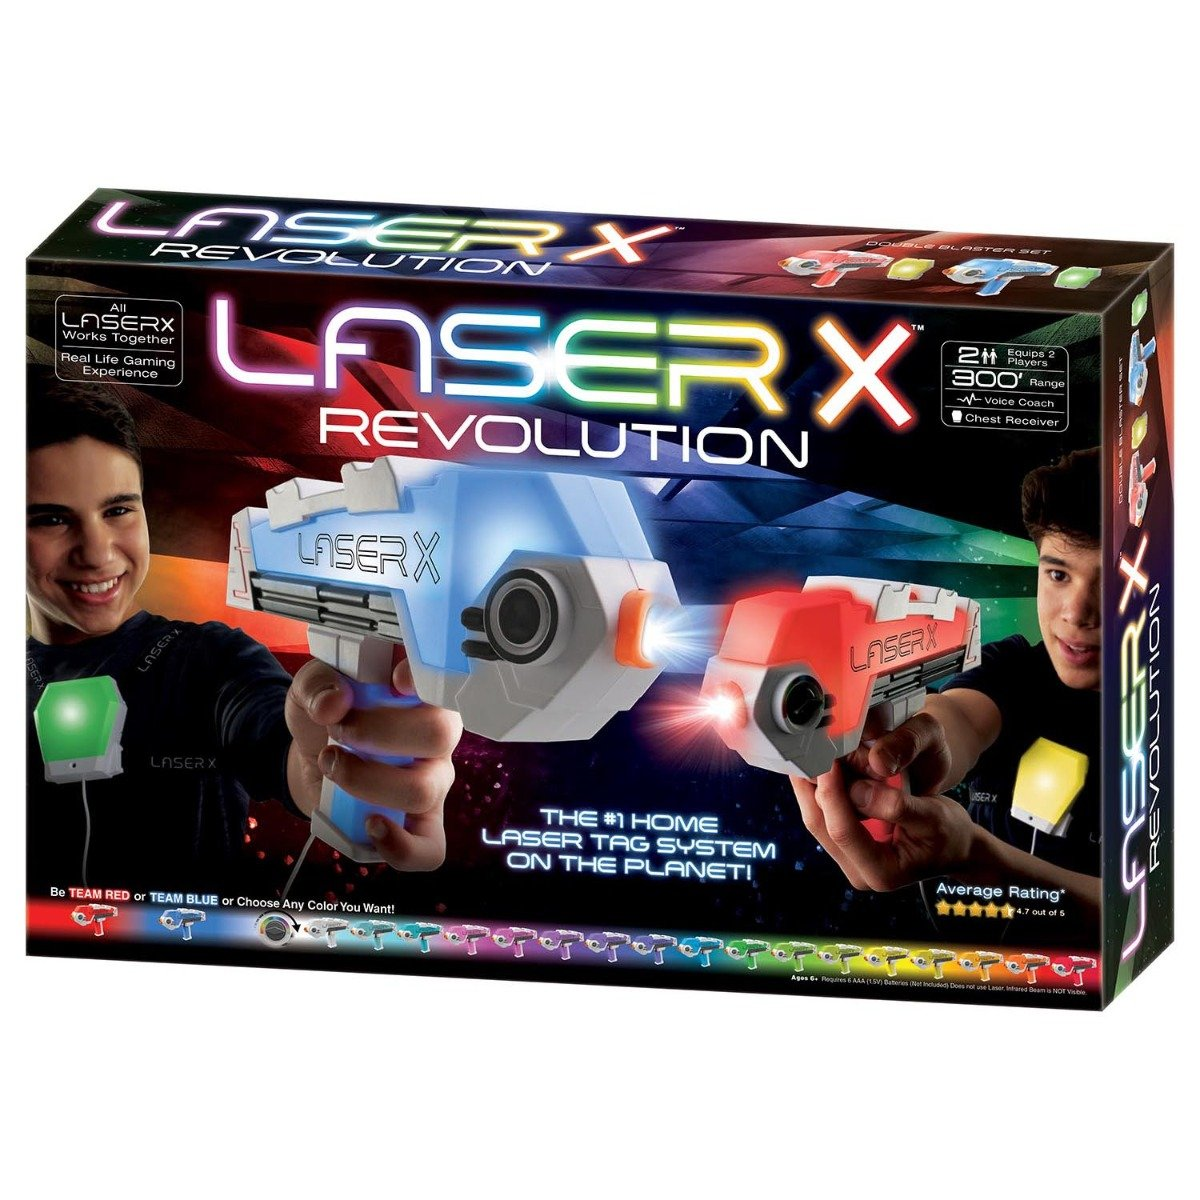 Set Blaster Revolution Double Laser X